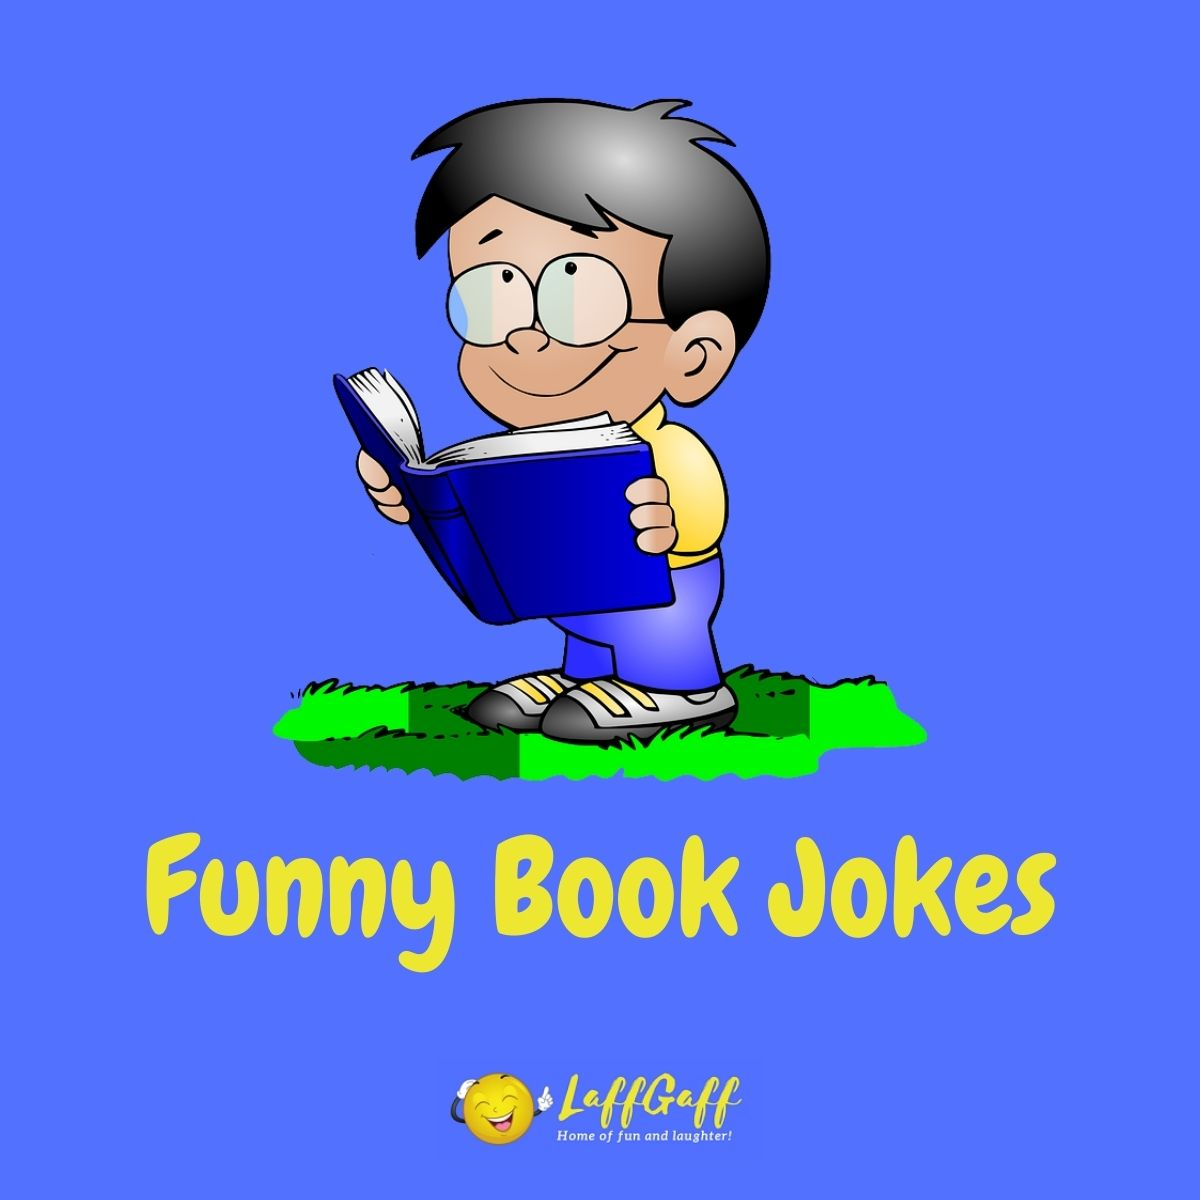 Featured image for a page of funny book jokes and puns.